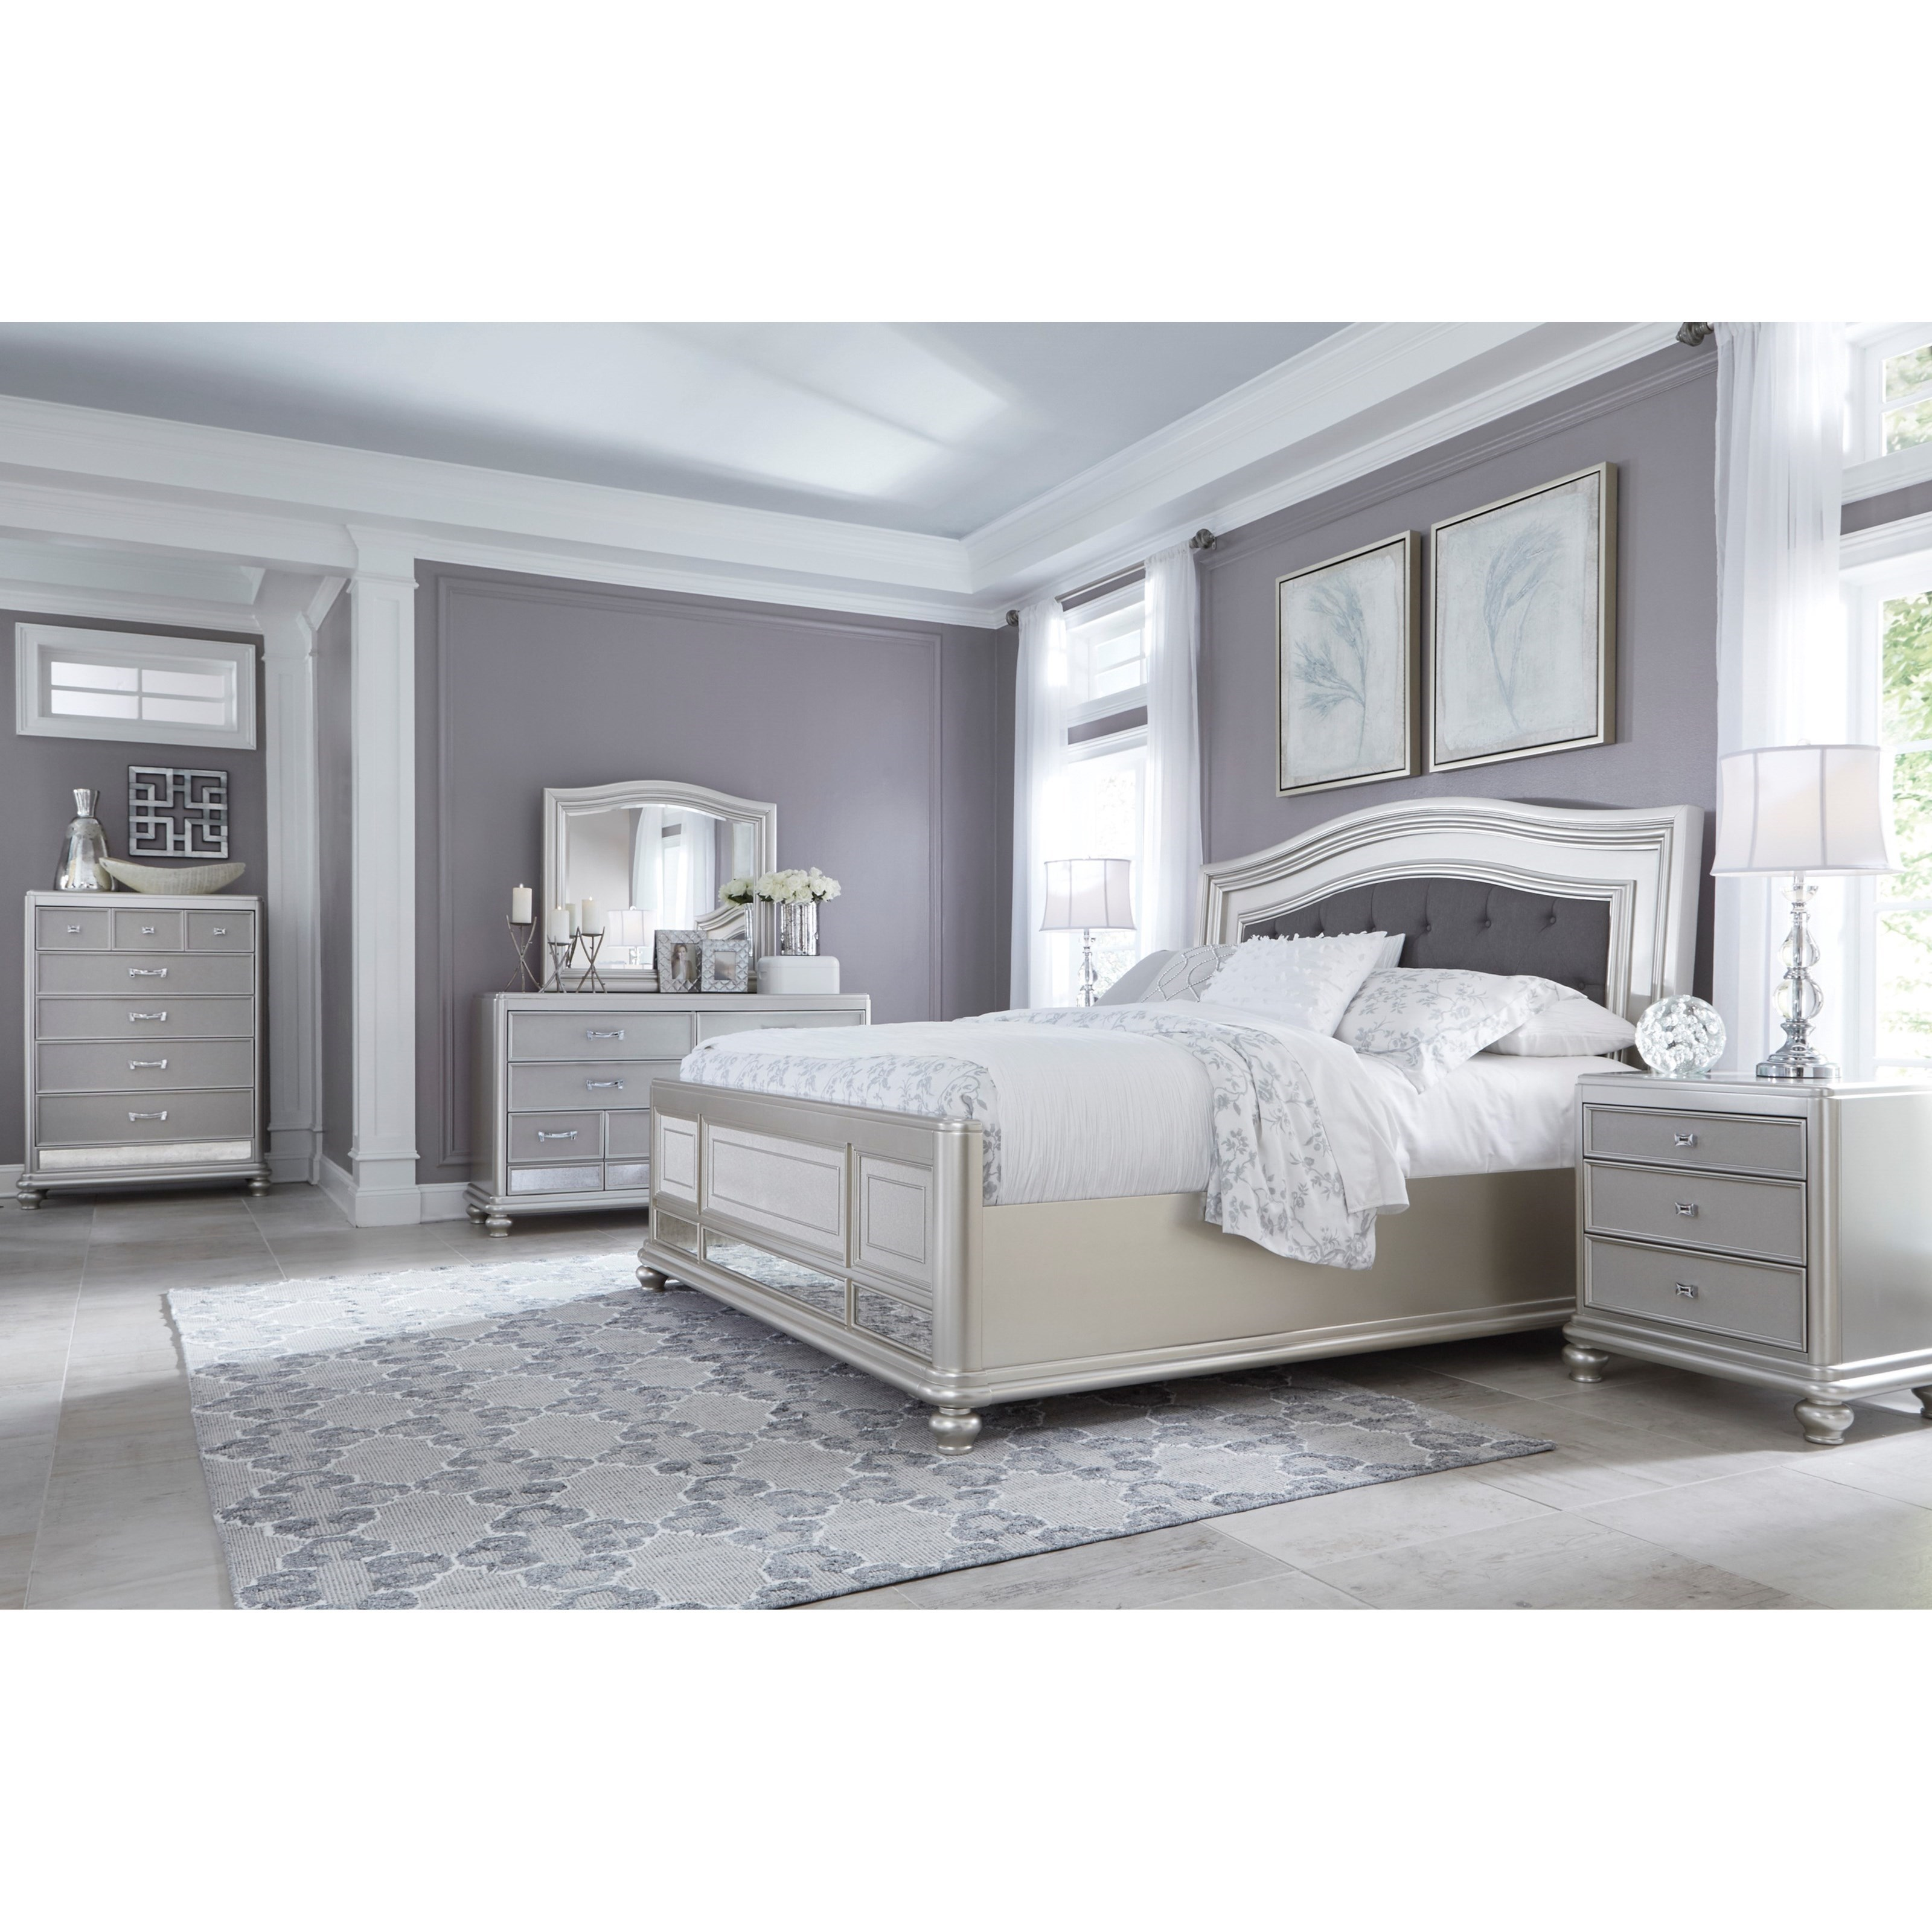 California King Bedroom Group by Signature Design by